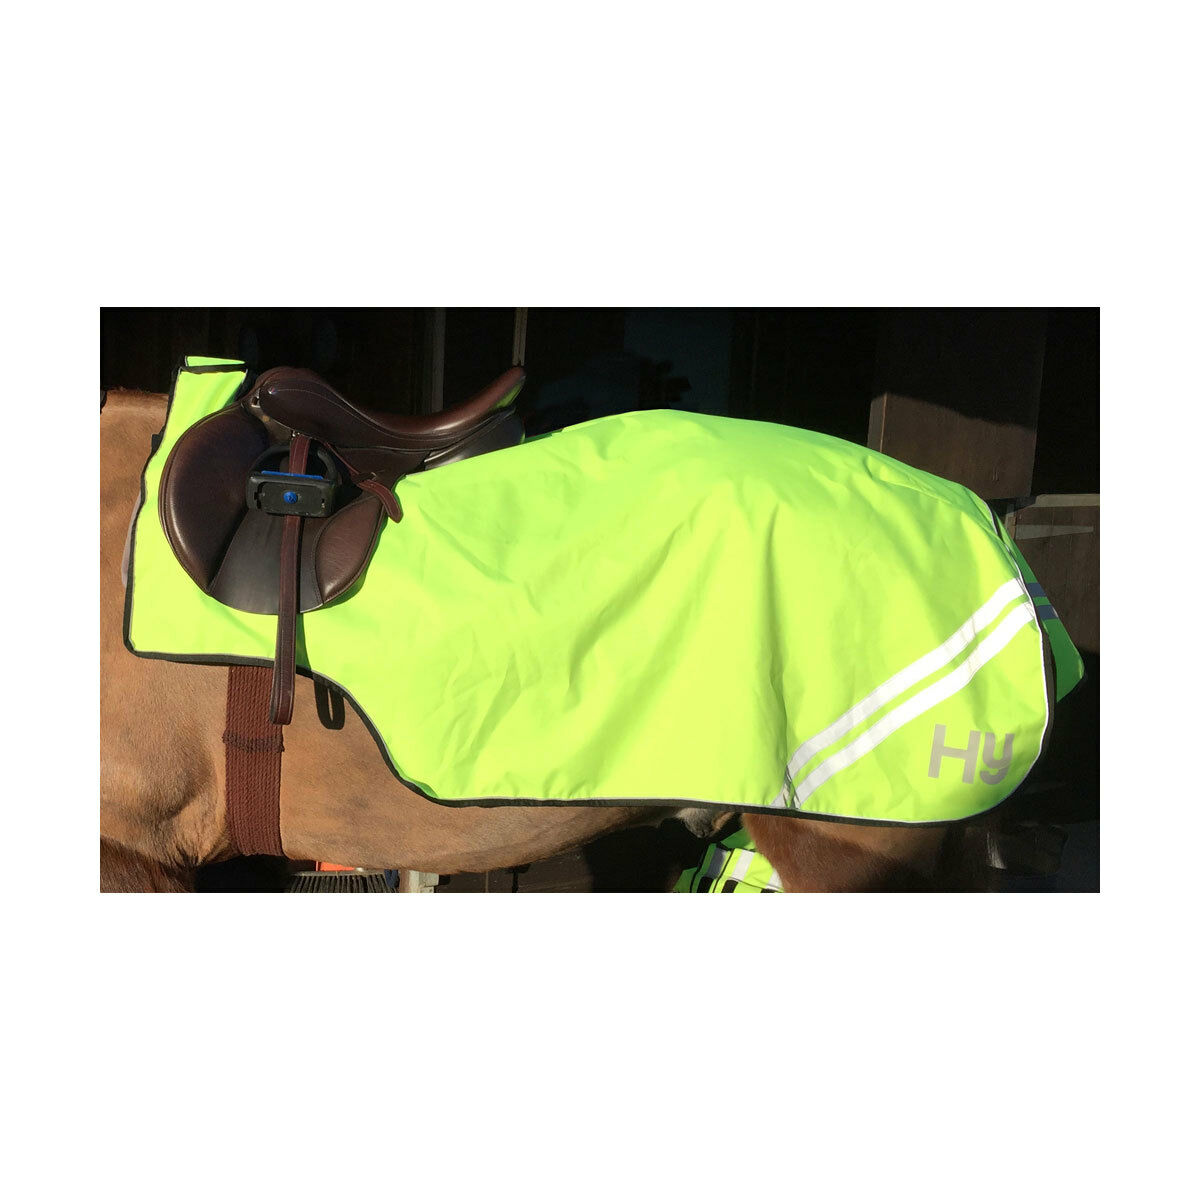 HyVIZ Reflective Flourescent Hi-Vis Reflector Exercise  Sheet Yellow 4'6 -5'0   promotions